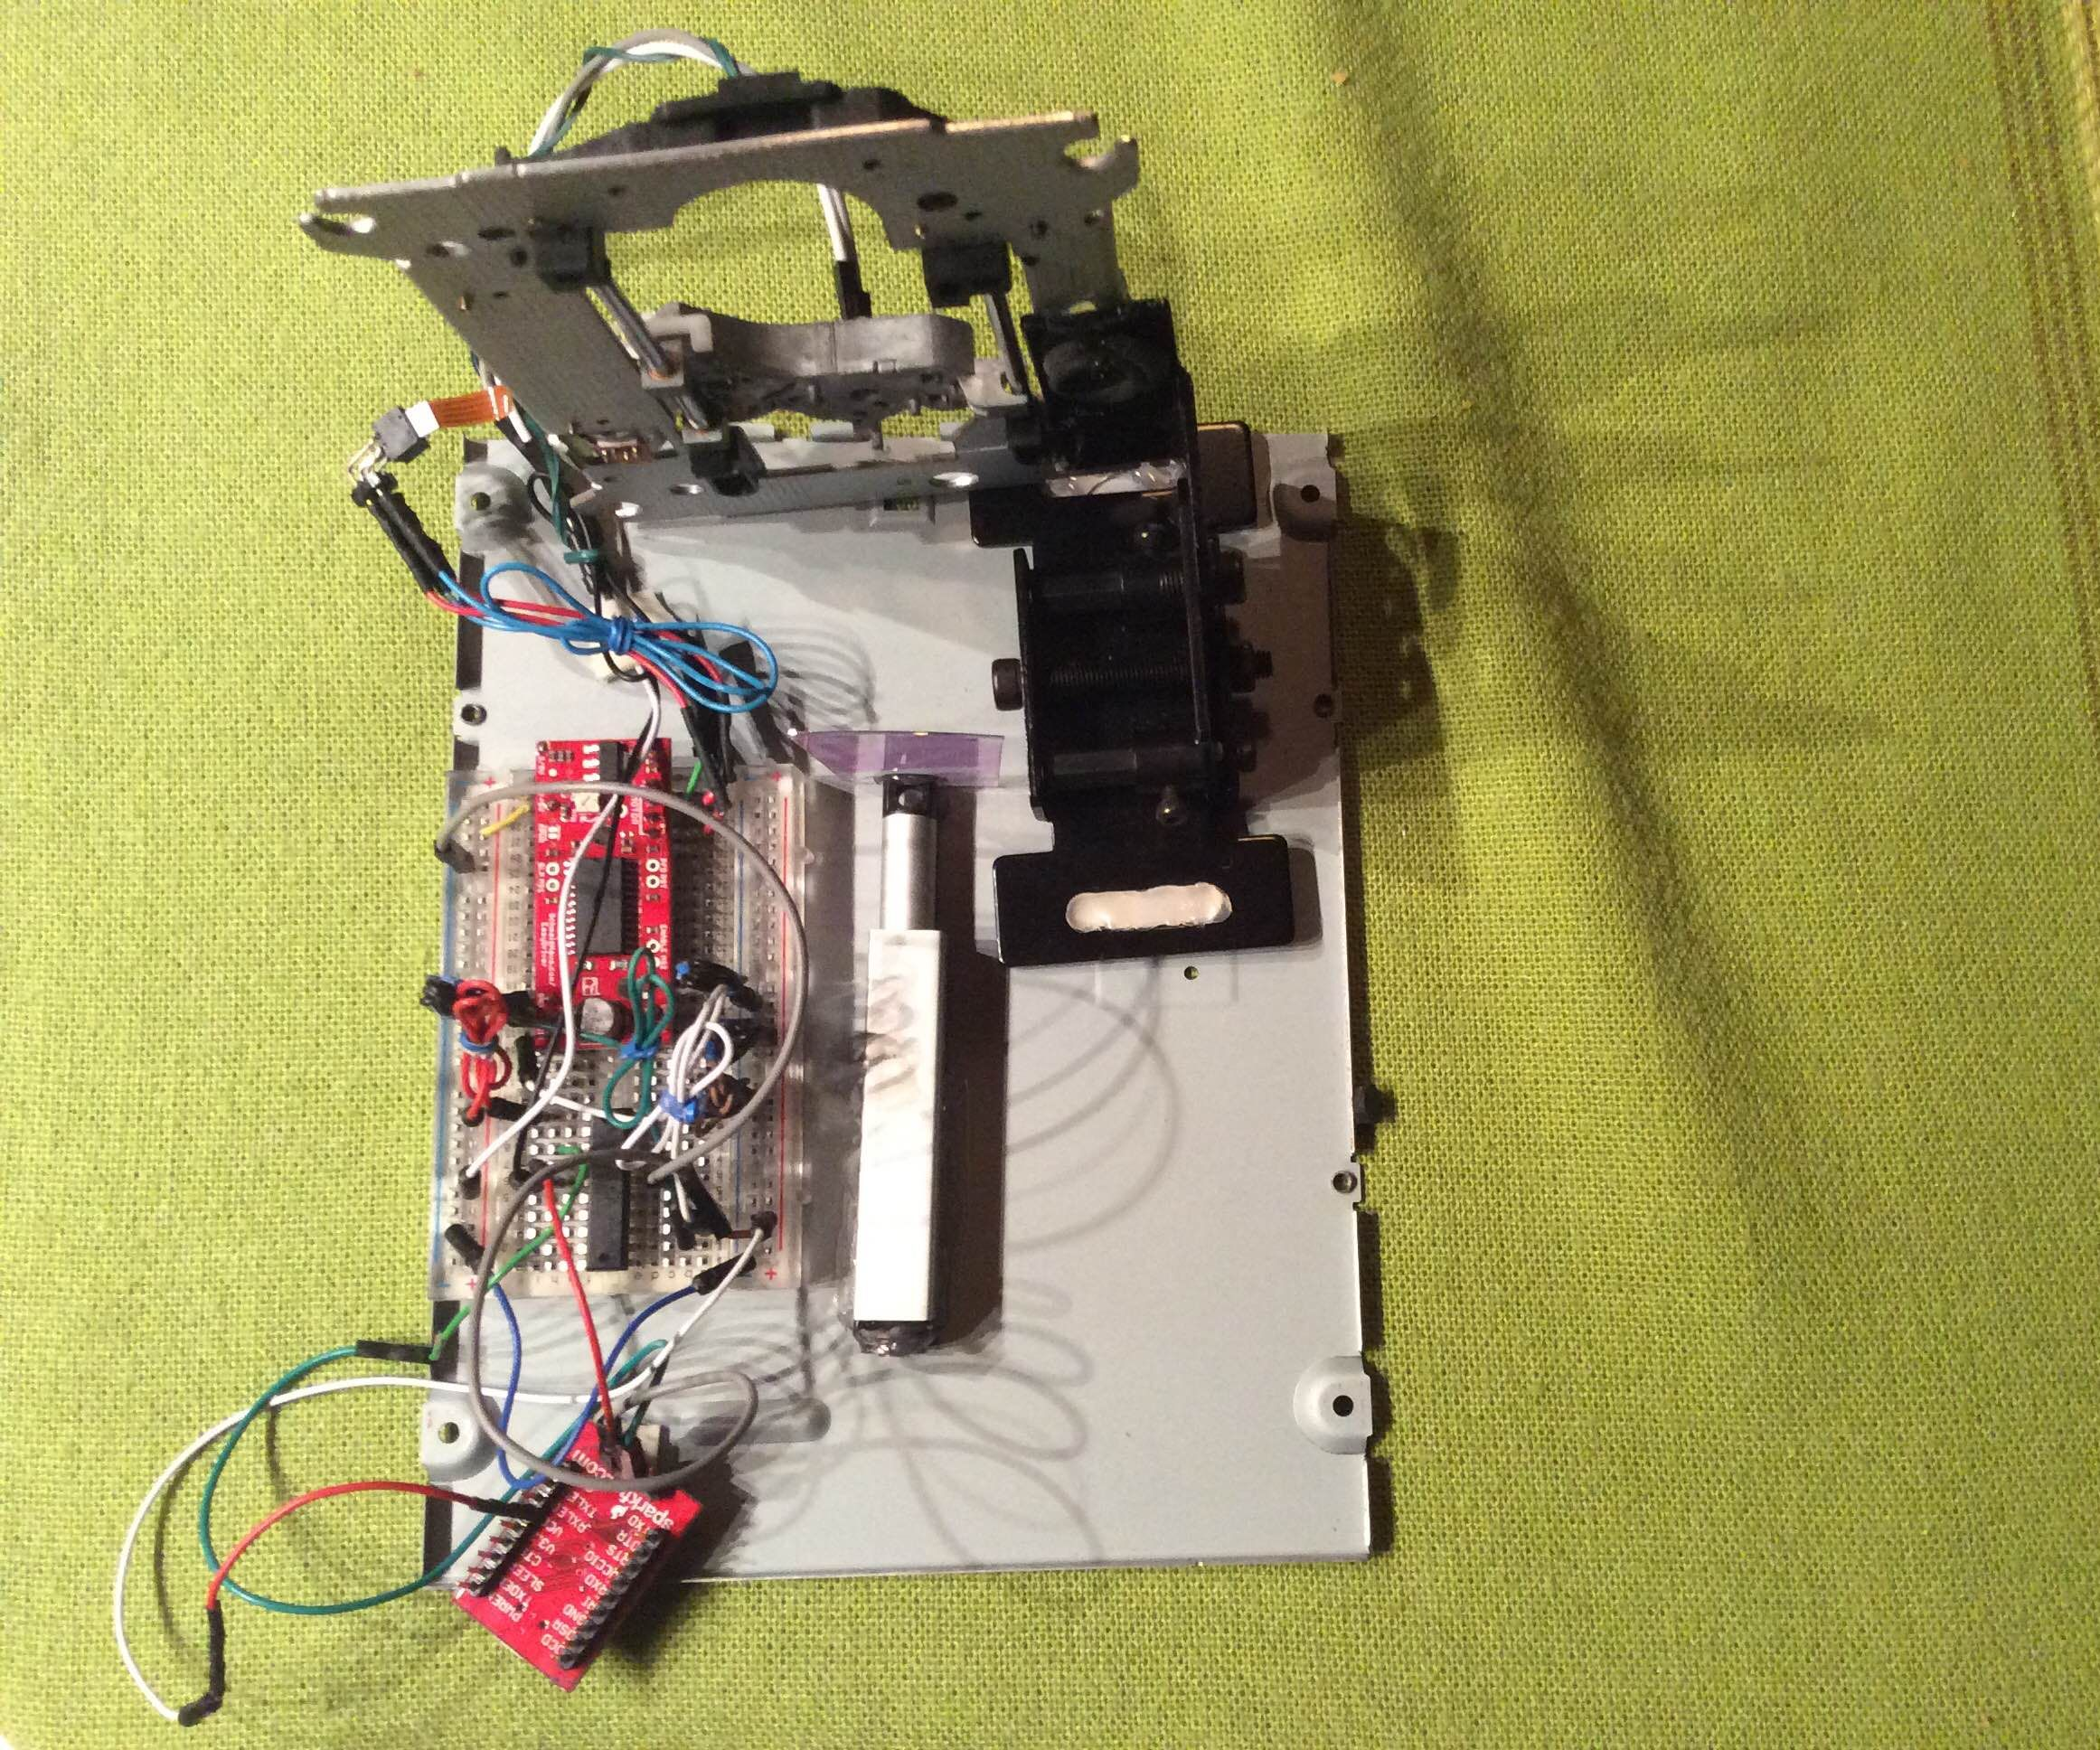 DIY Spectrometer) Explore the Unknown ->